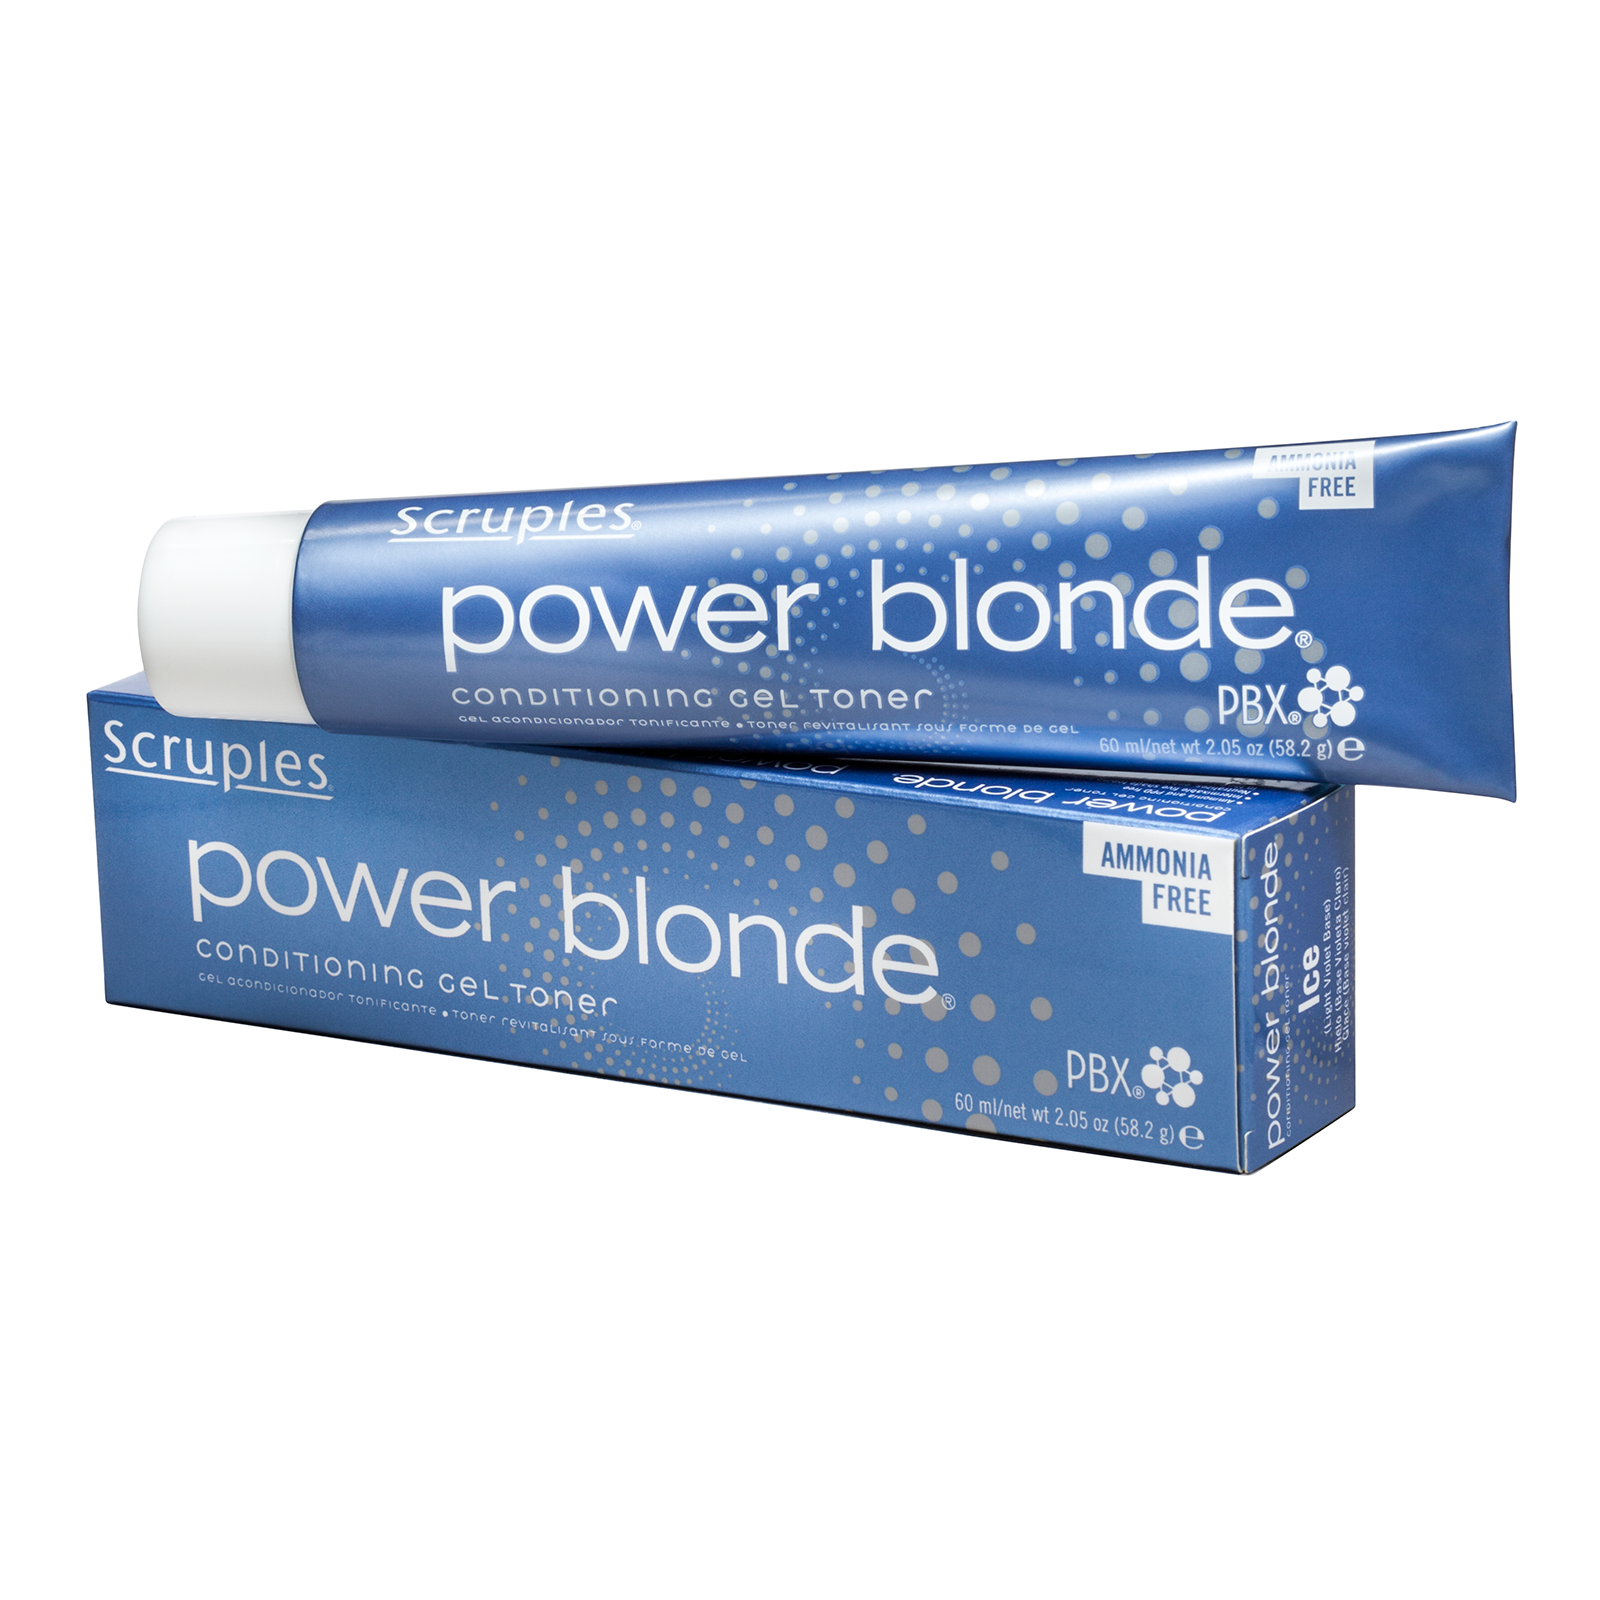 Power Blonde Conditioning Gel Toner - Cream